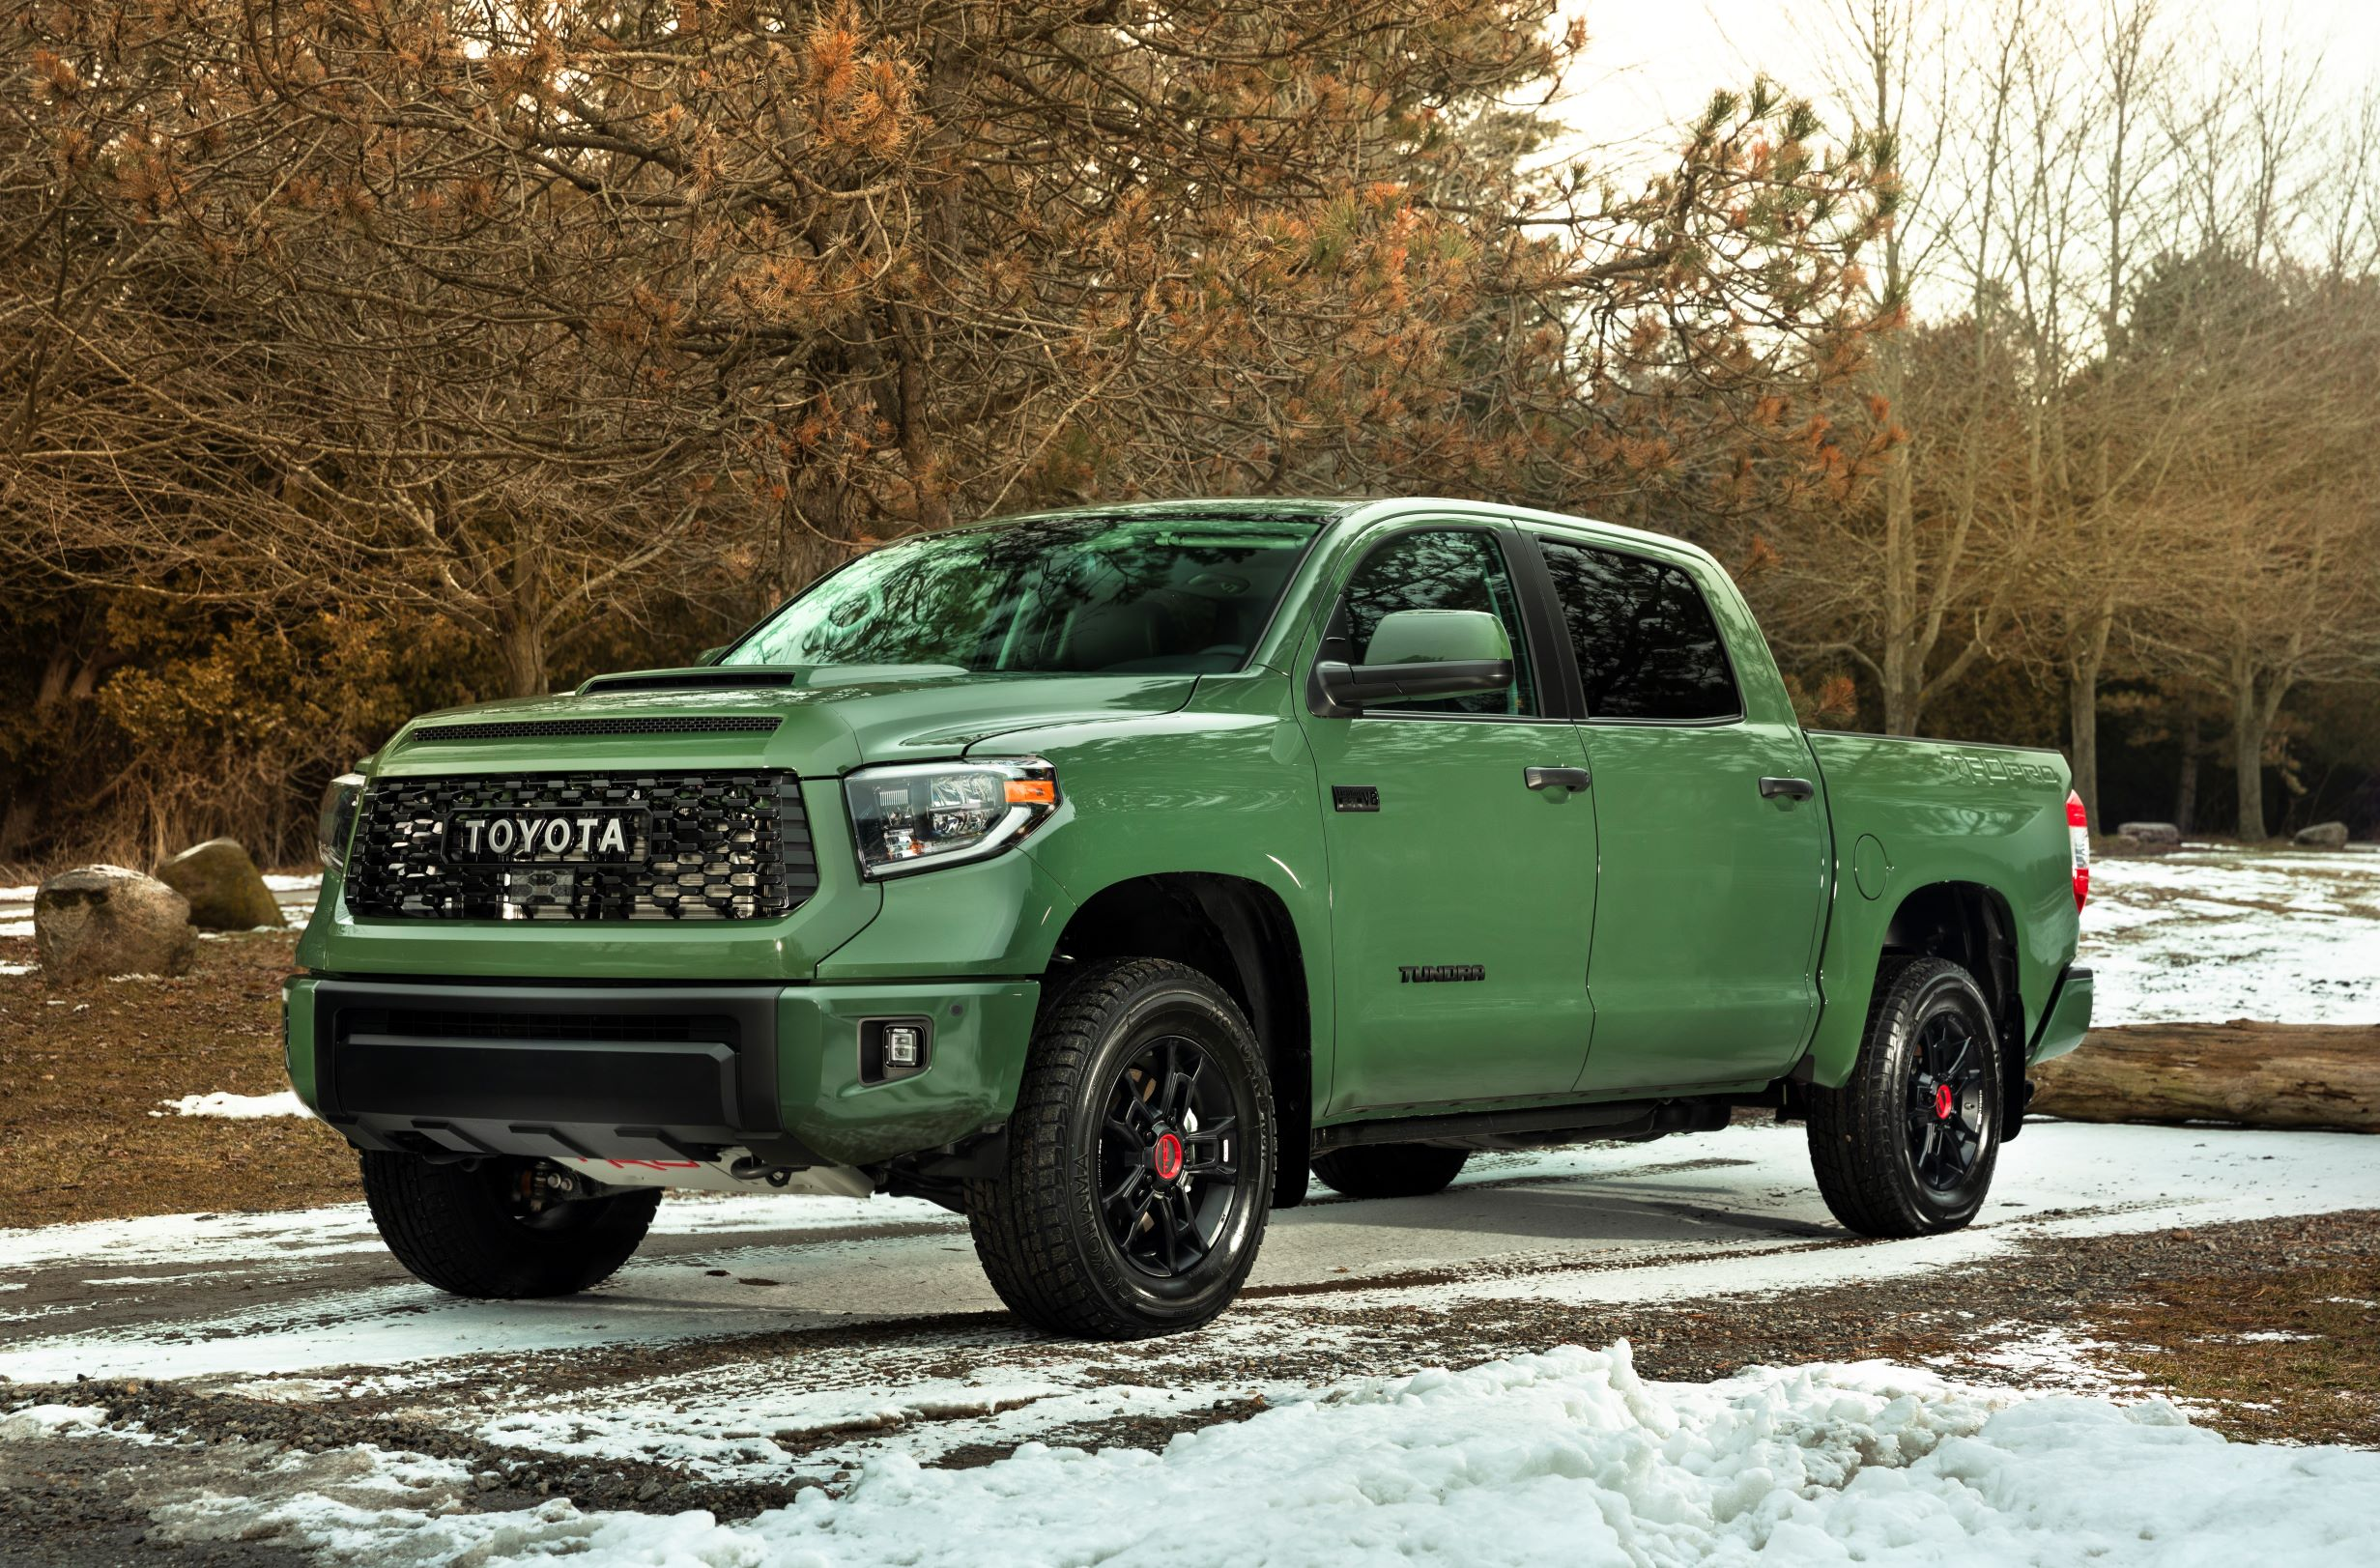 An Overview of the 2020 Toyota Tundra